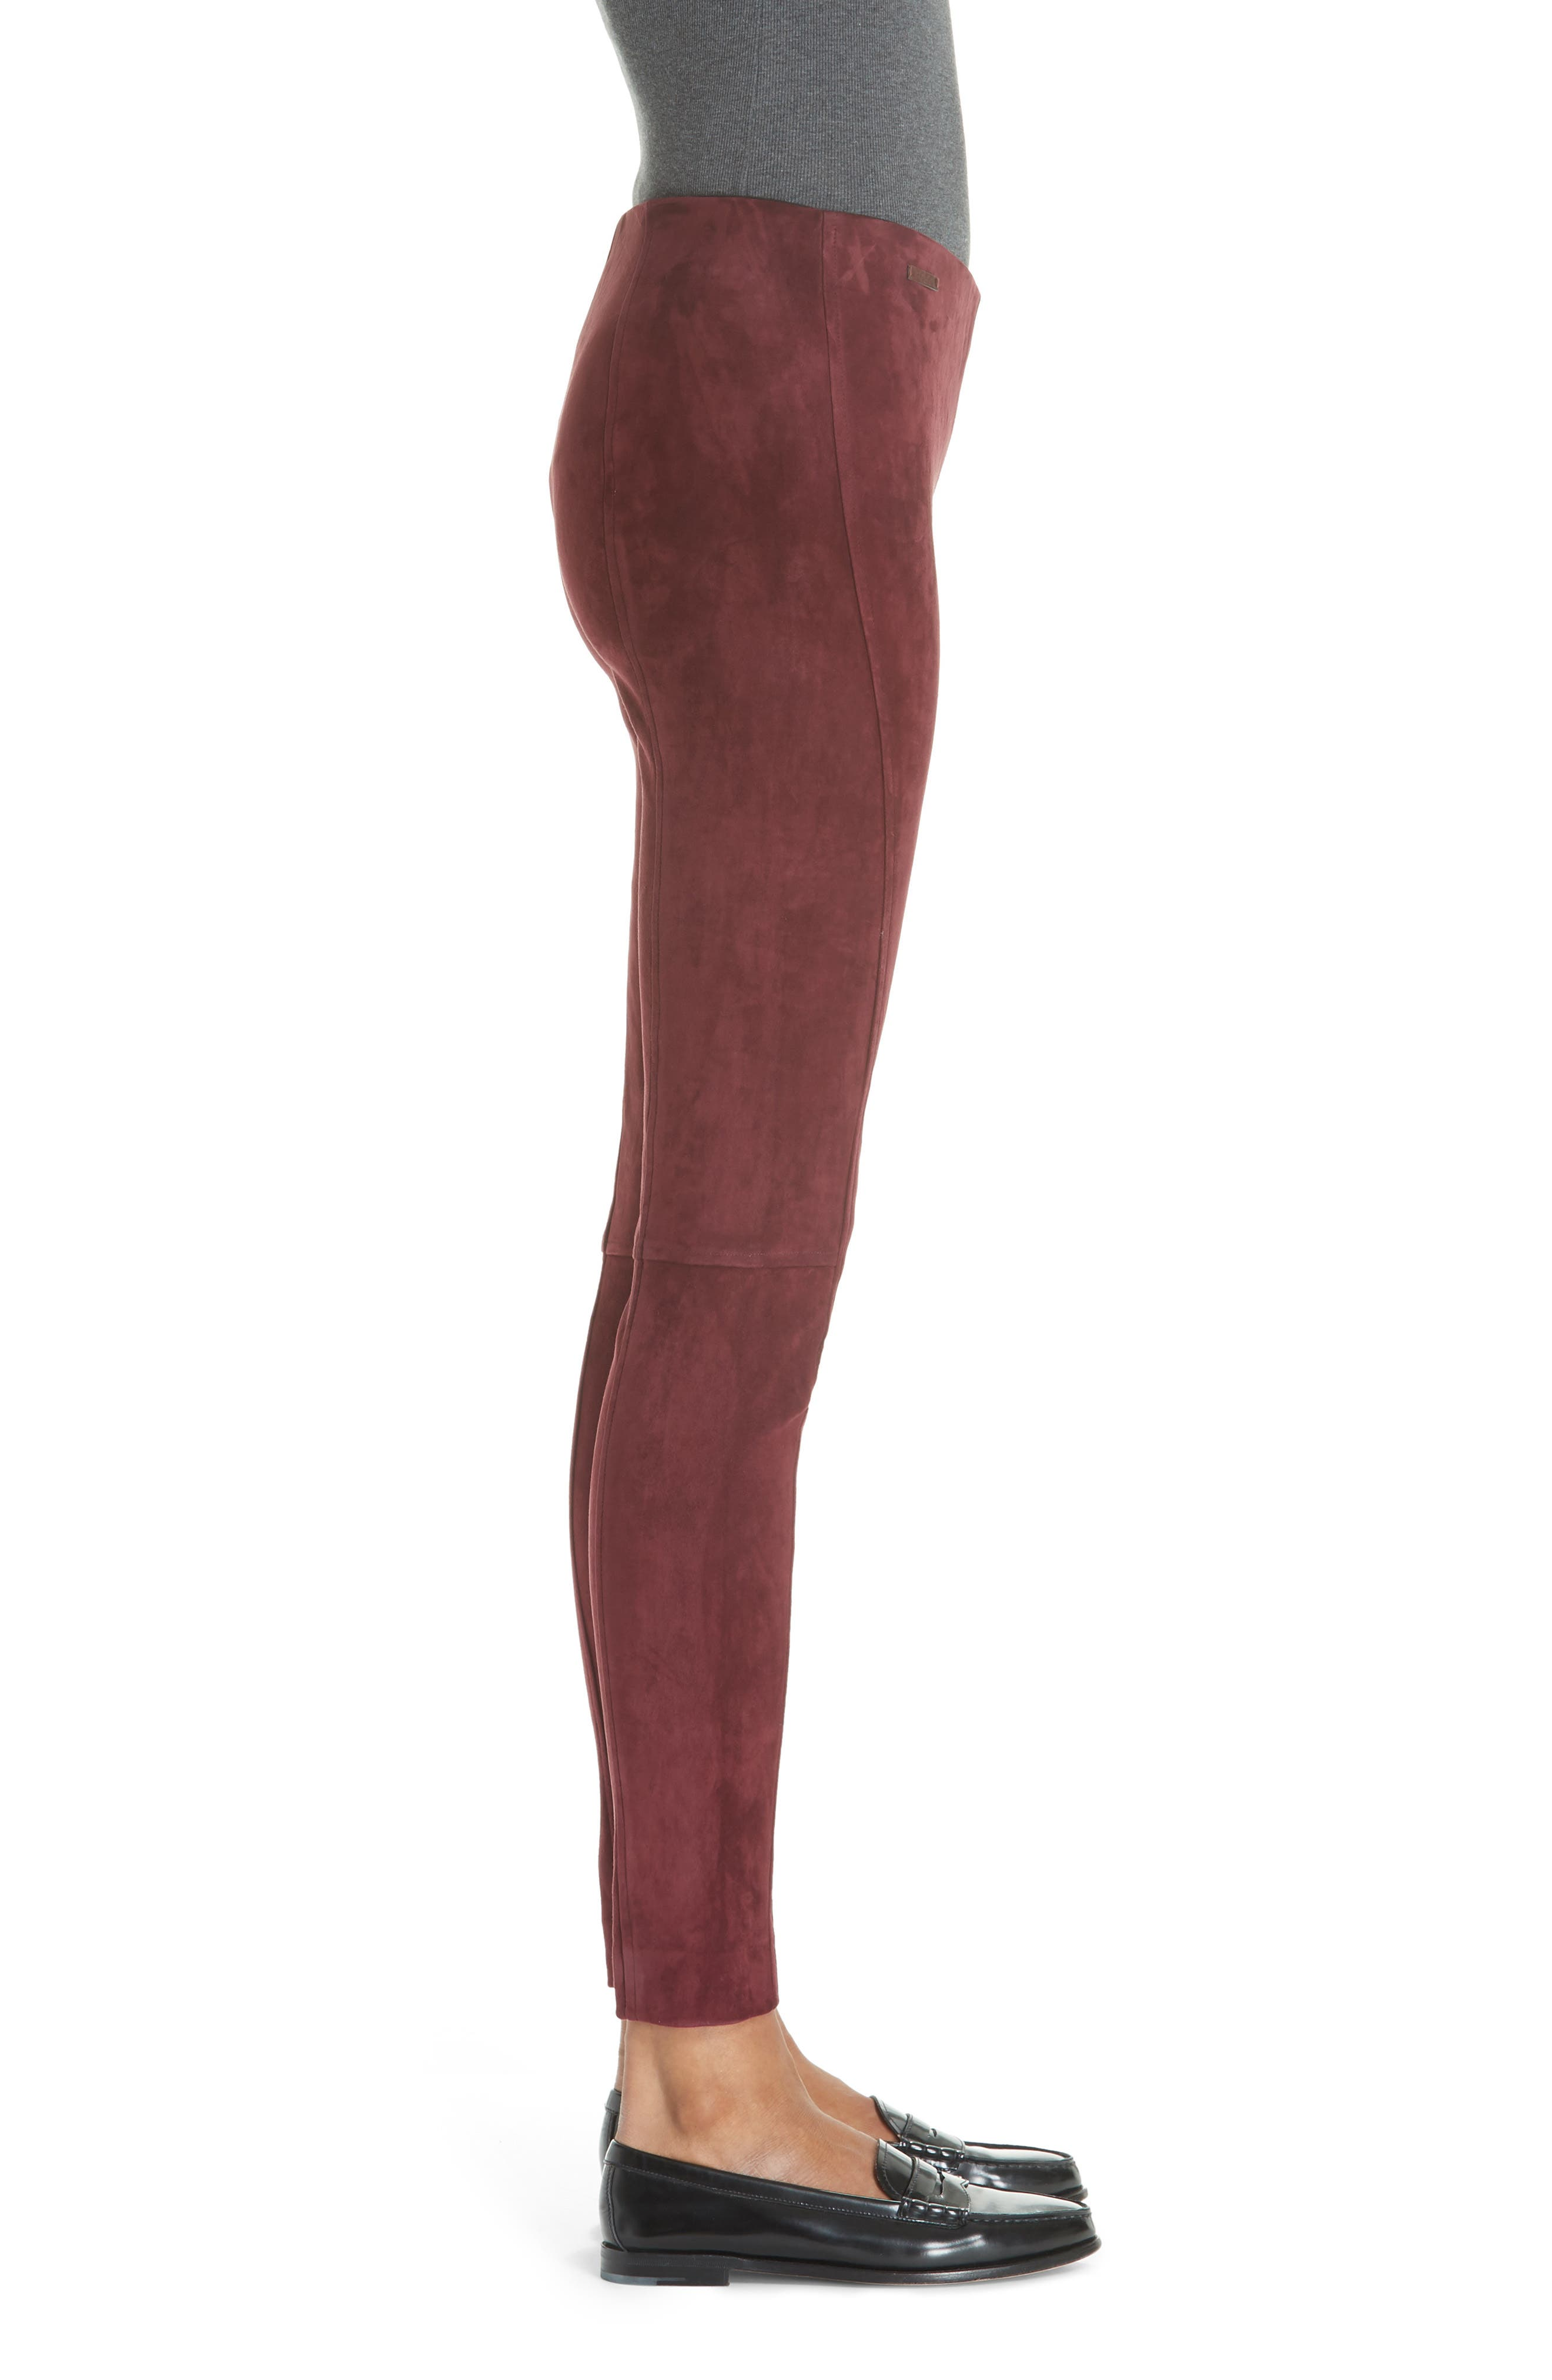 POLO RALPH LAUREN,                             Pull-On Skinny Suede Pants,                             Alternate thumbnail 3, color,                             930